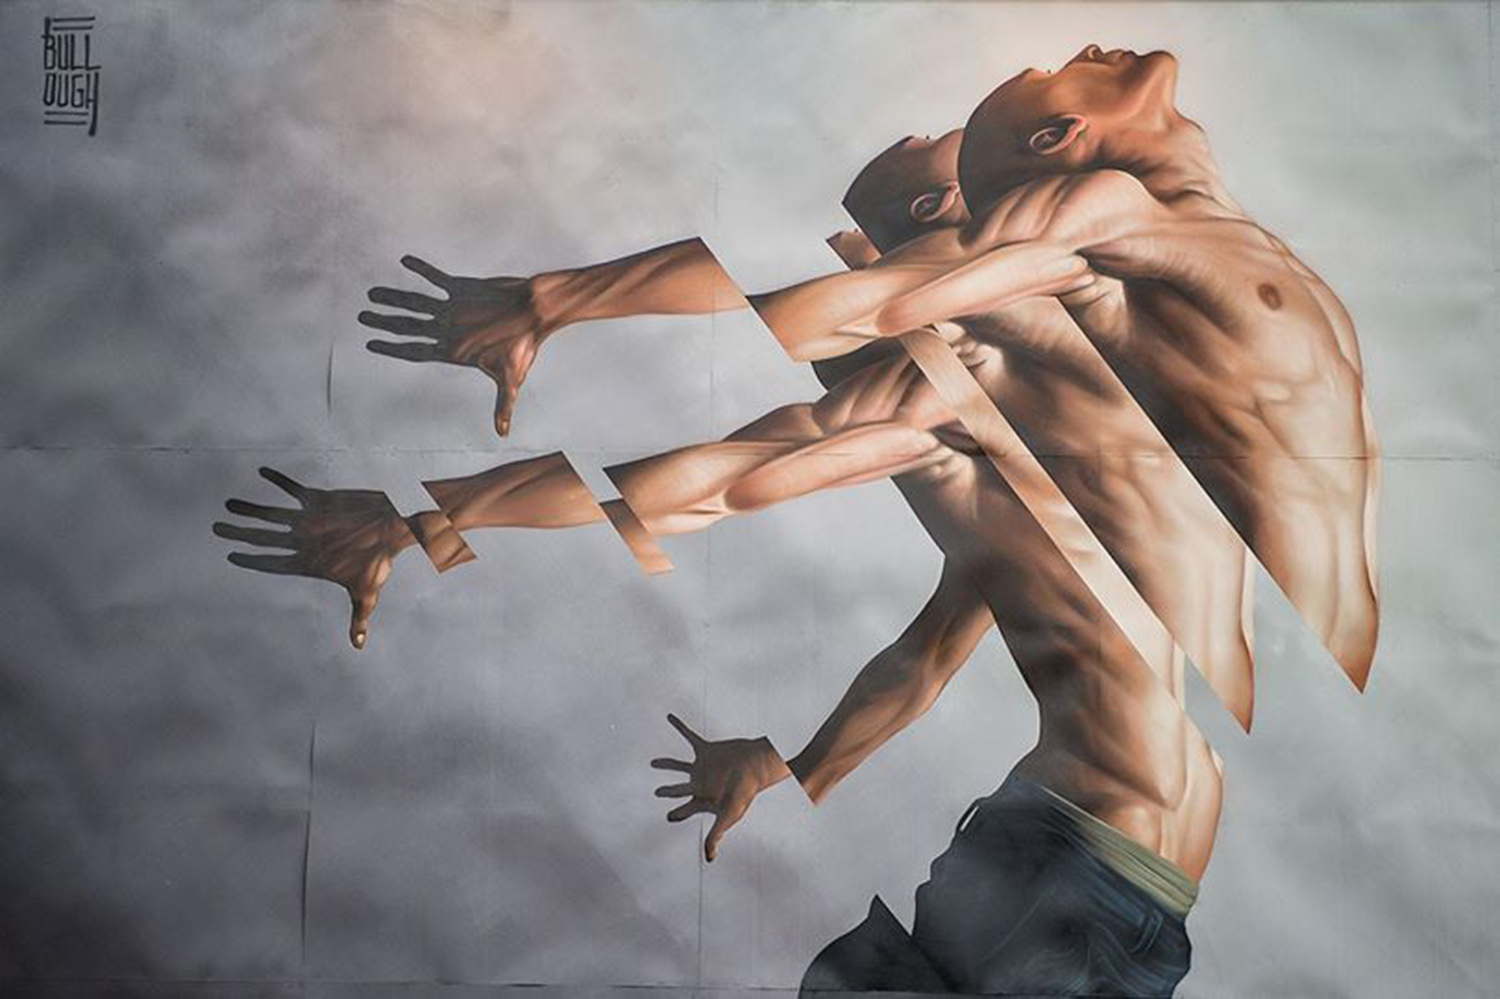 segmented mural of a man by james bullough